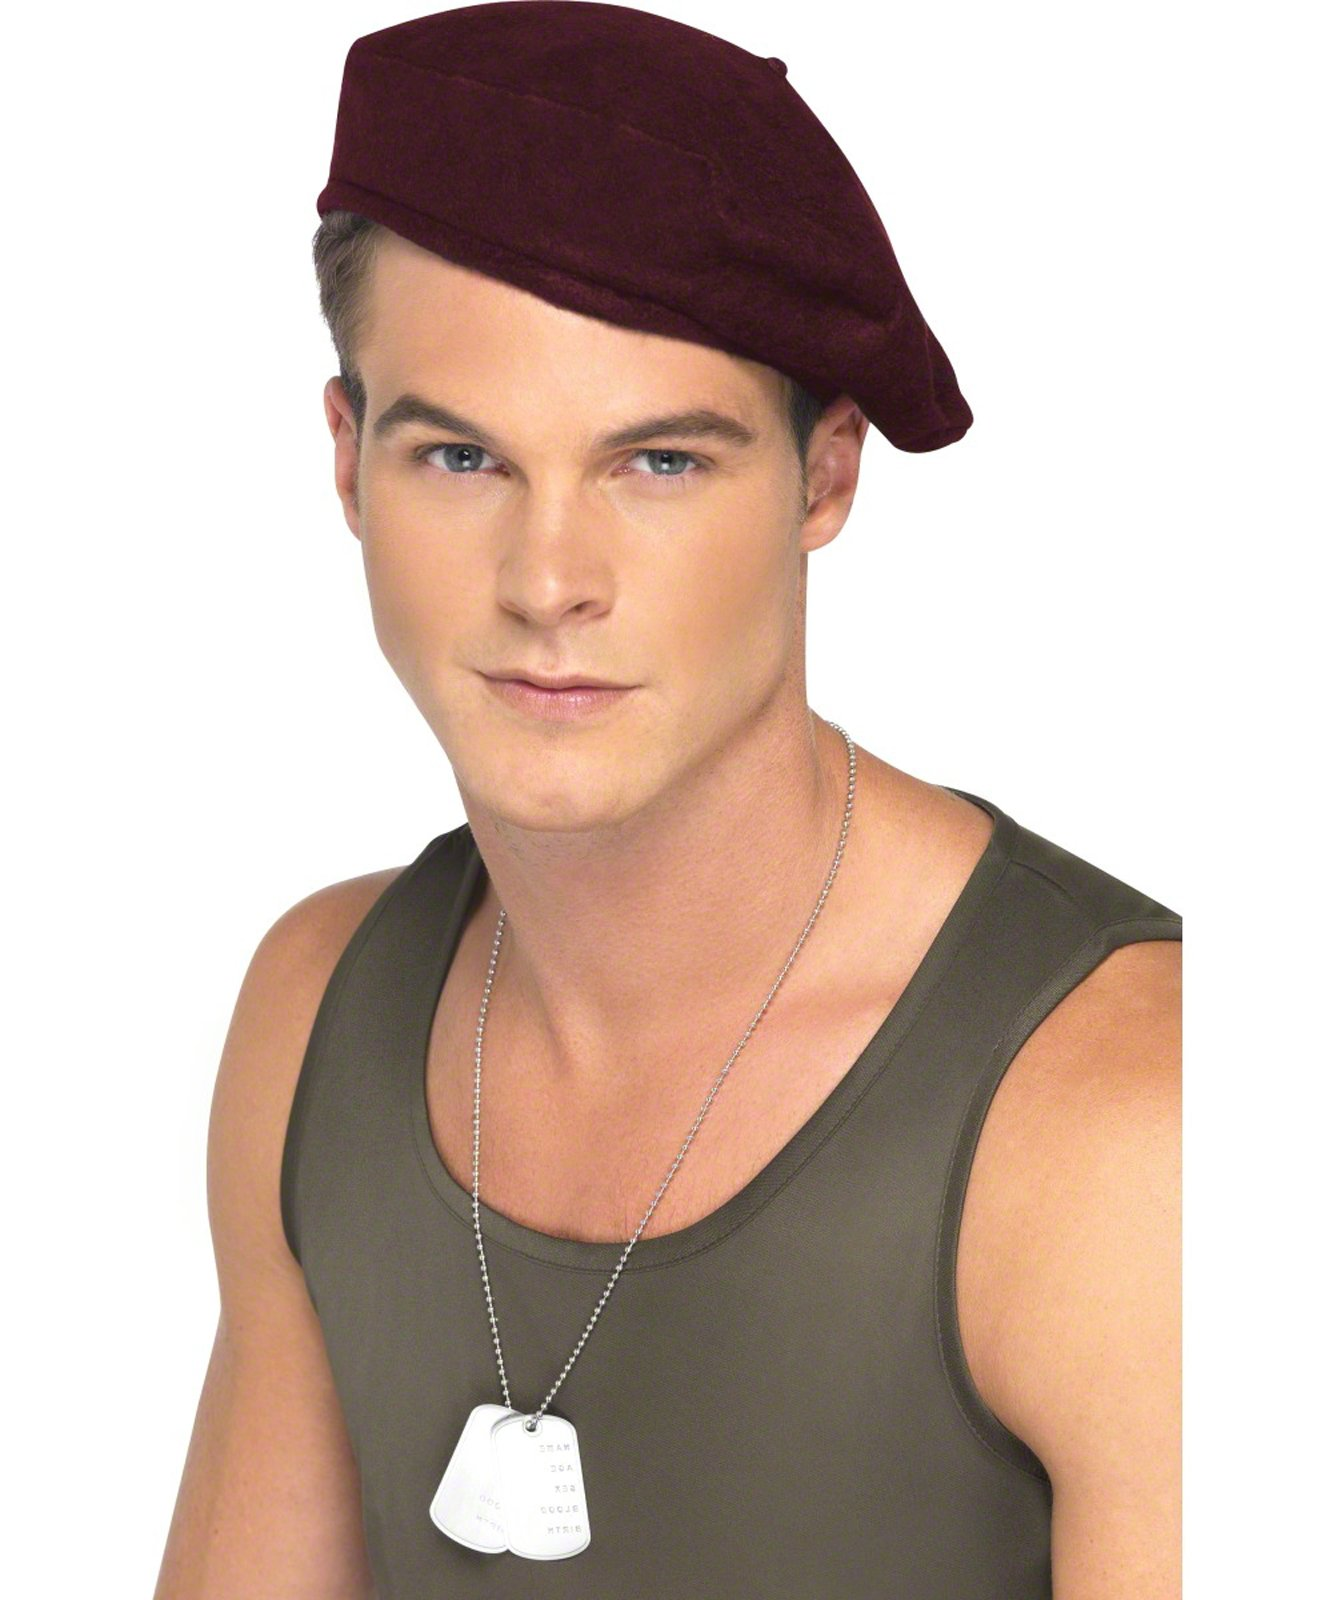 Soldiers Red Beret Adult Hat